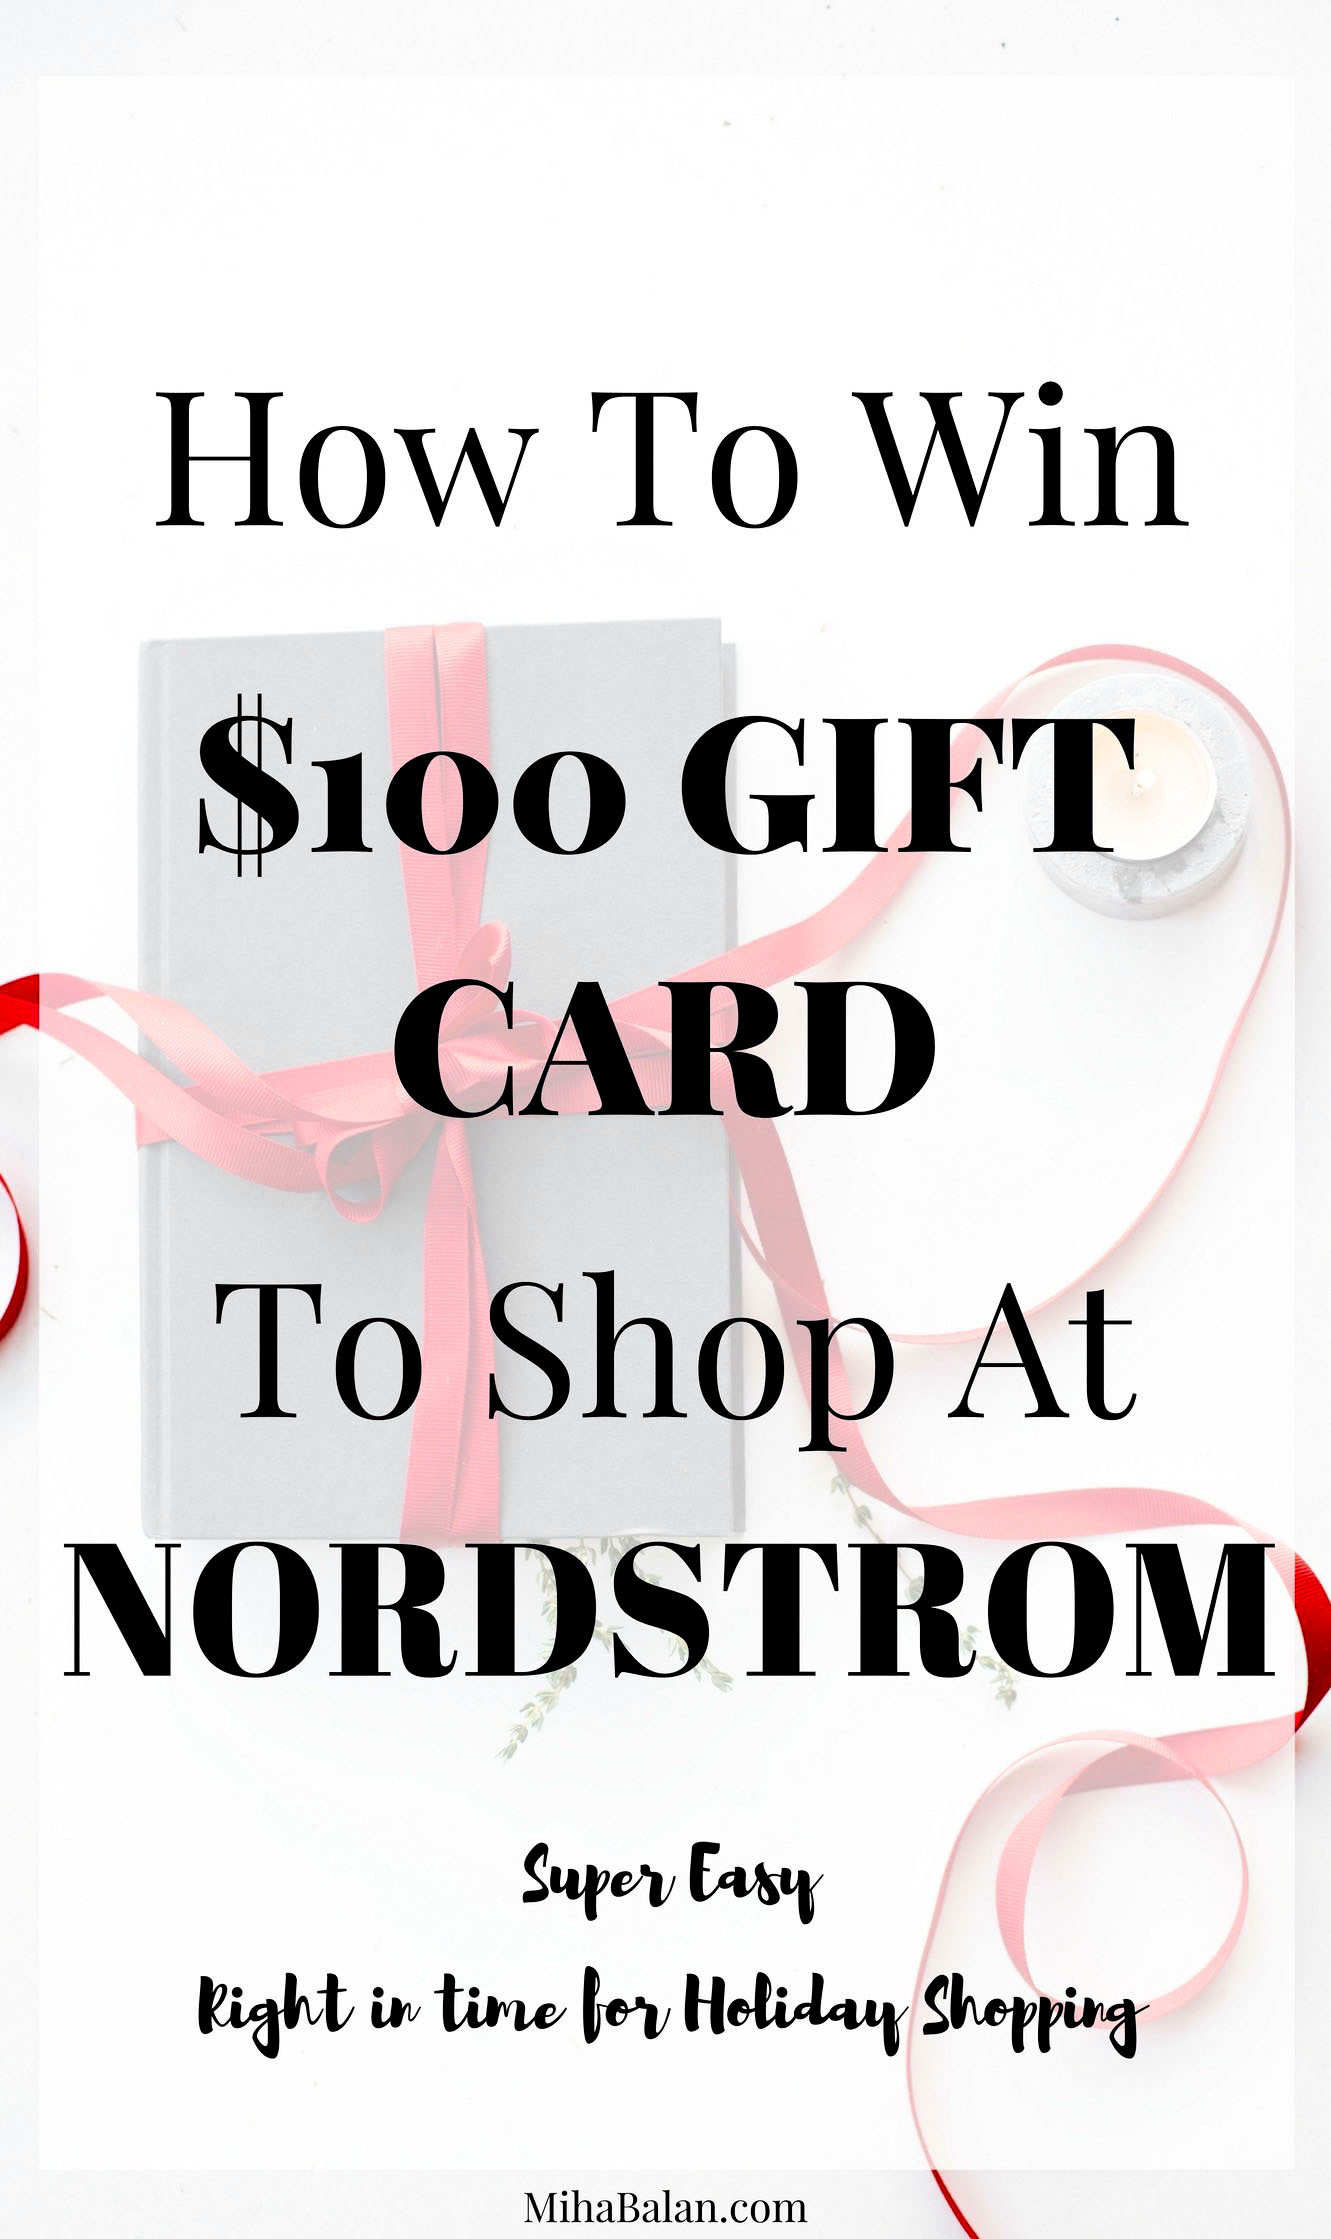 How To Win $100 GIFT CARD TO SHOP AT NORDSTROM, GIVEAWAY, CONTEST, CHRISTMAS SHOPPING, HOLIDAY SHOPPING, GIFTS FOR HIM AND HER copy